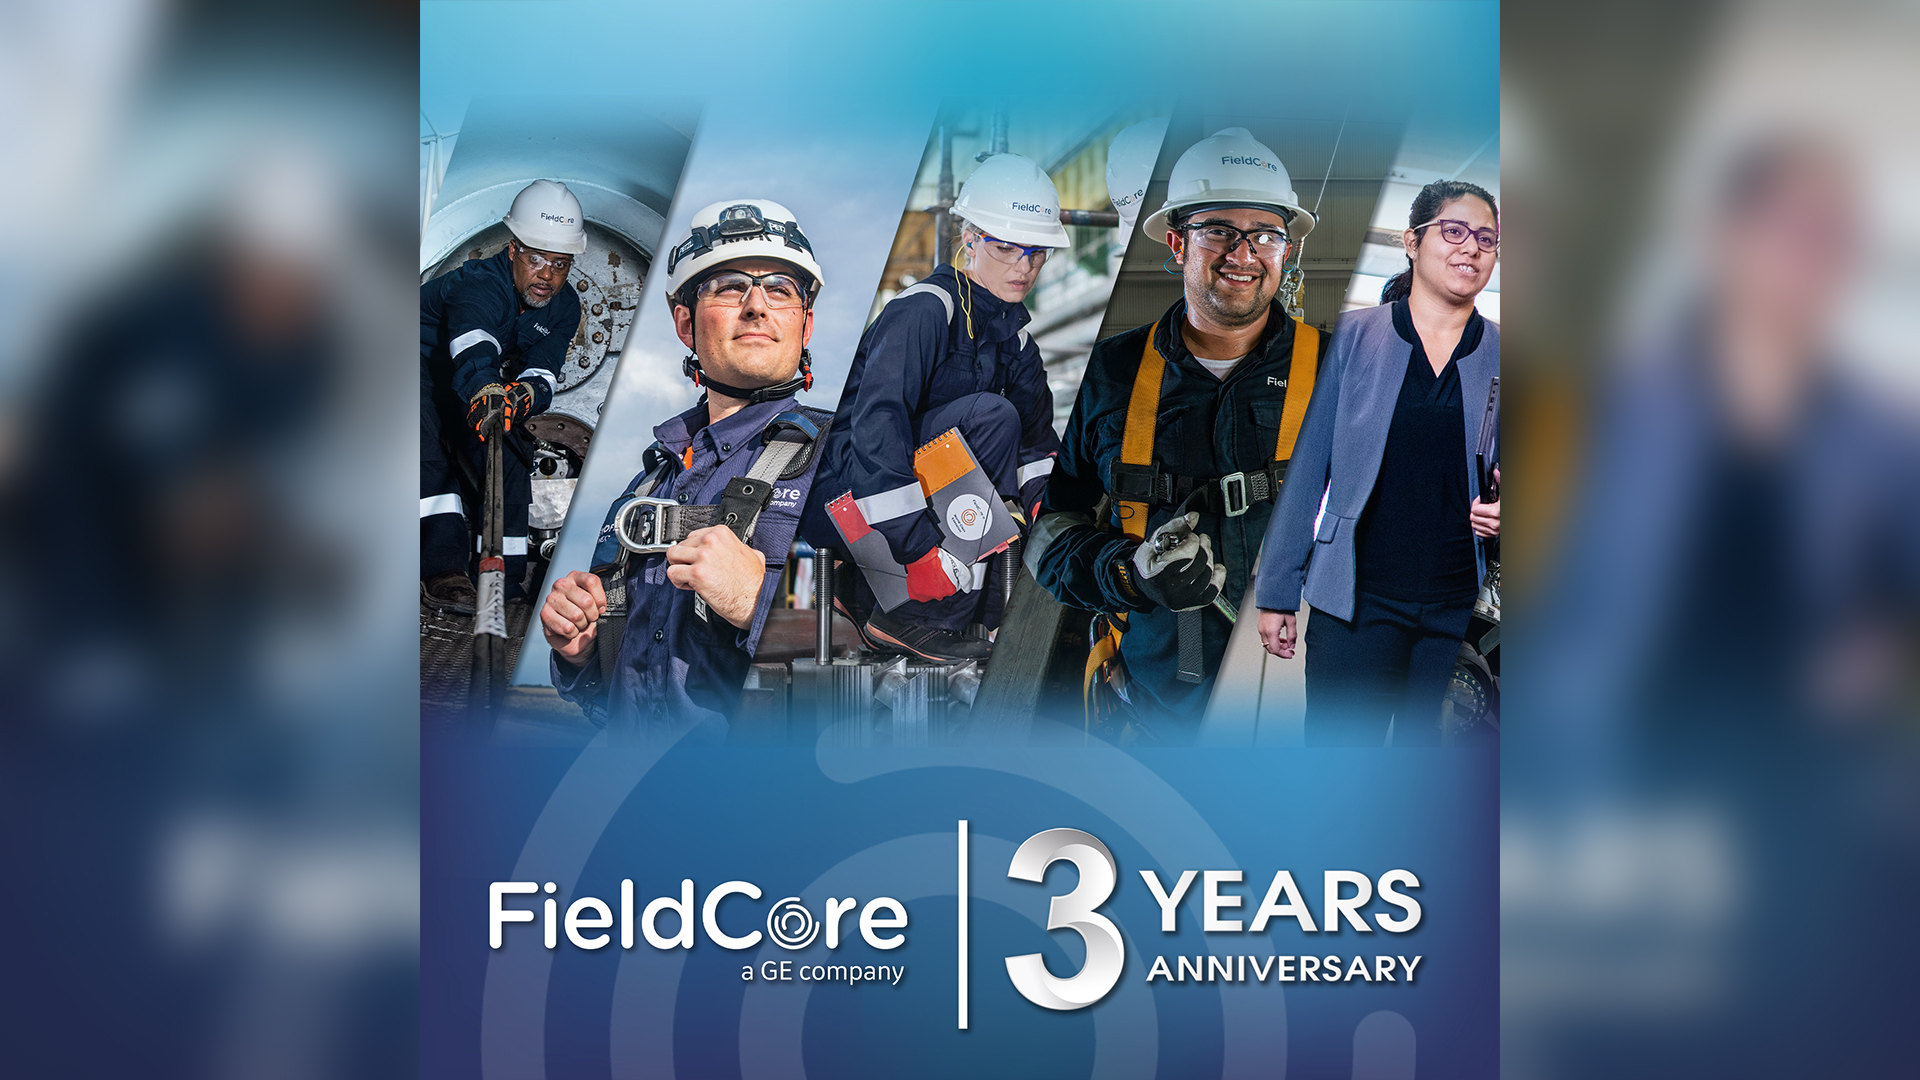 HAPPY BIRTHDAY FIELDCORE!!! … 3 YEAR REFLECTION